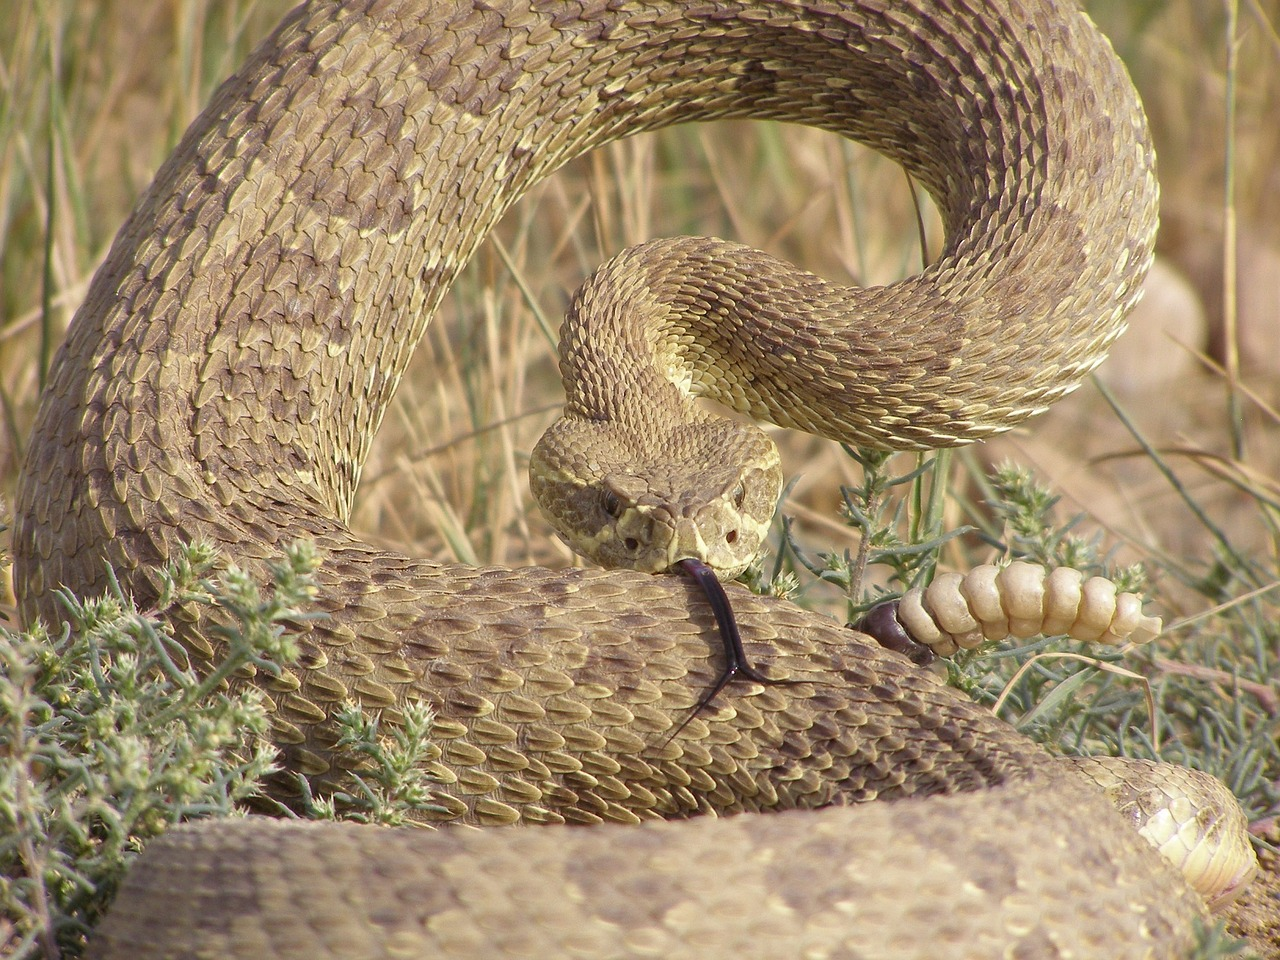 Poisonous Snakes: How to avoid them and what to do if they bite